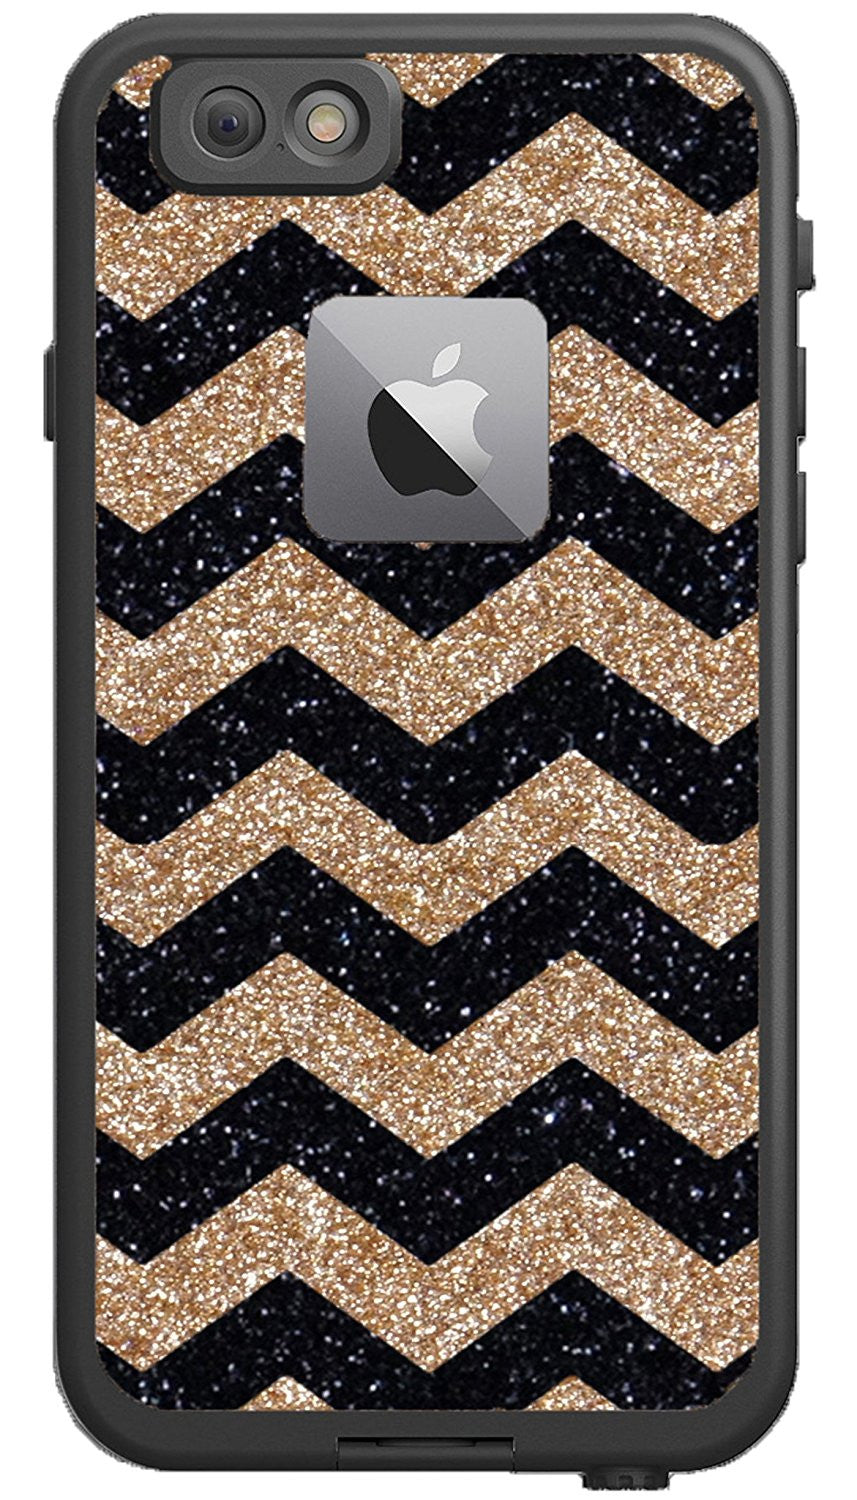 premium selection e9836 fbaae Lifeproof iPhone 6s Plus Case - Lifeproof Fre Series Custom Glitter Case  for iPhone 6 Plus, Retail Packaging - Black Small Chevron Gold/Black (5.5  ...